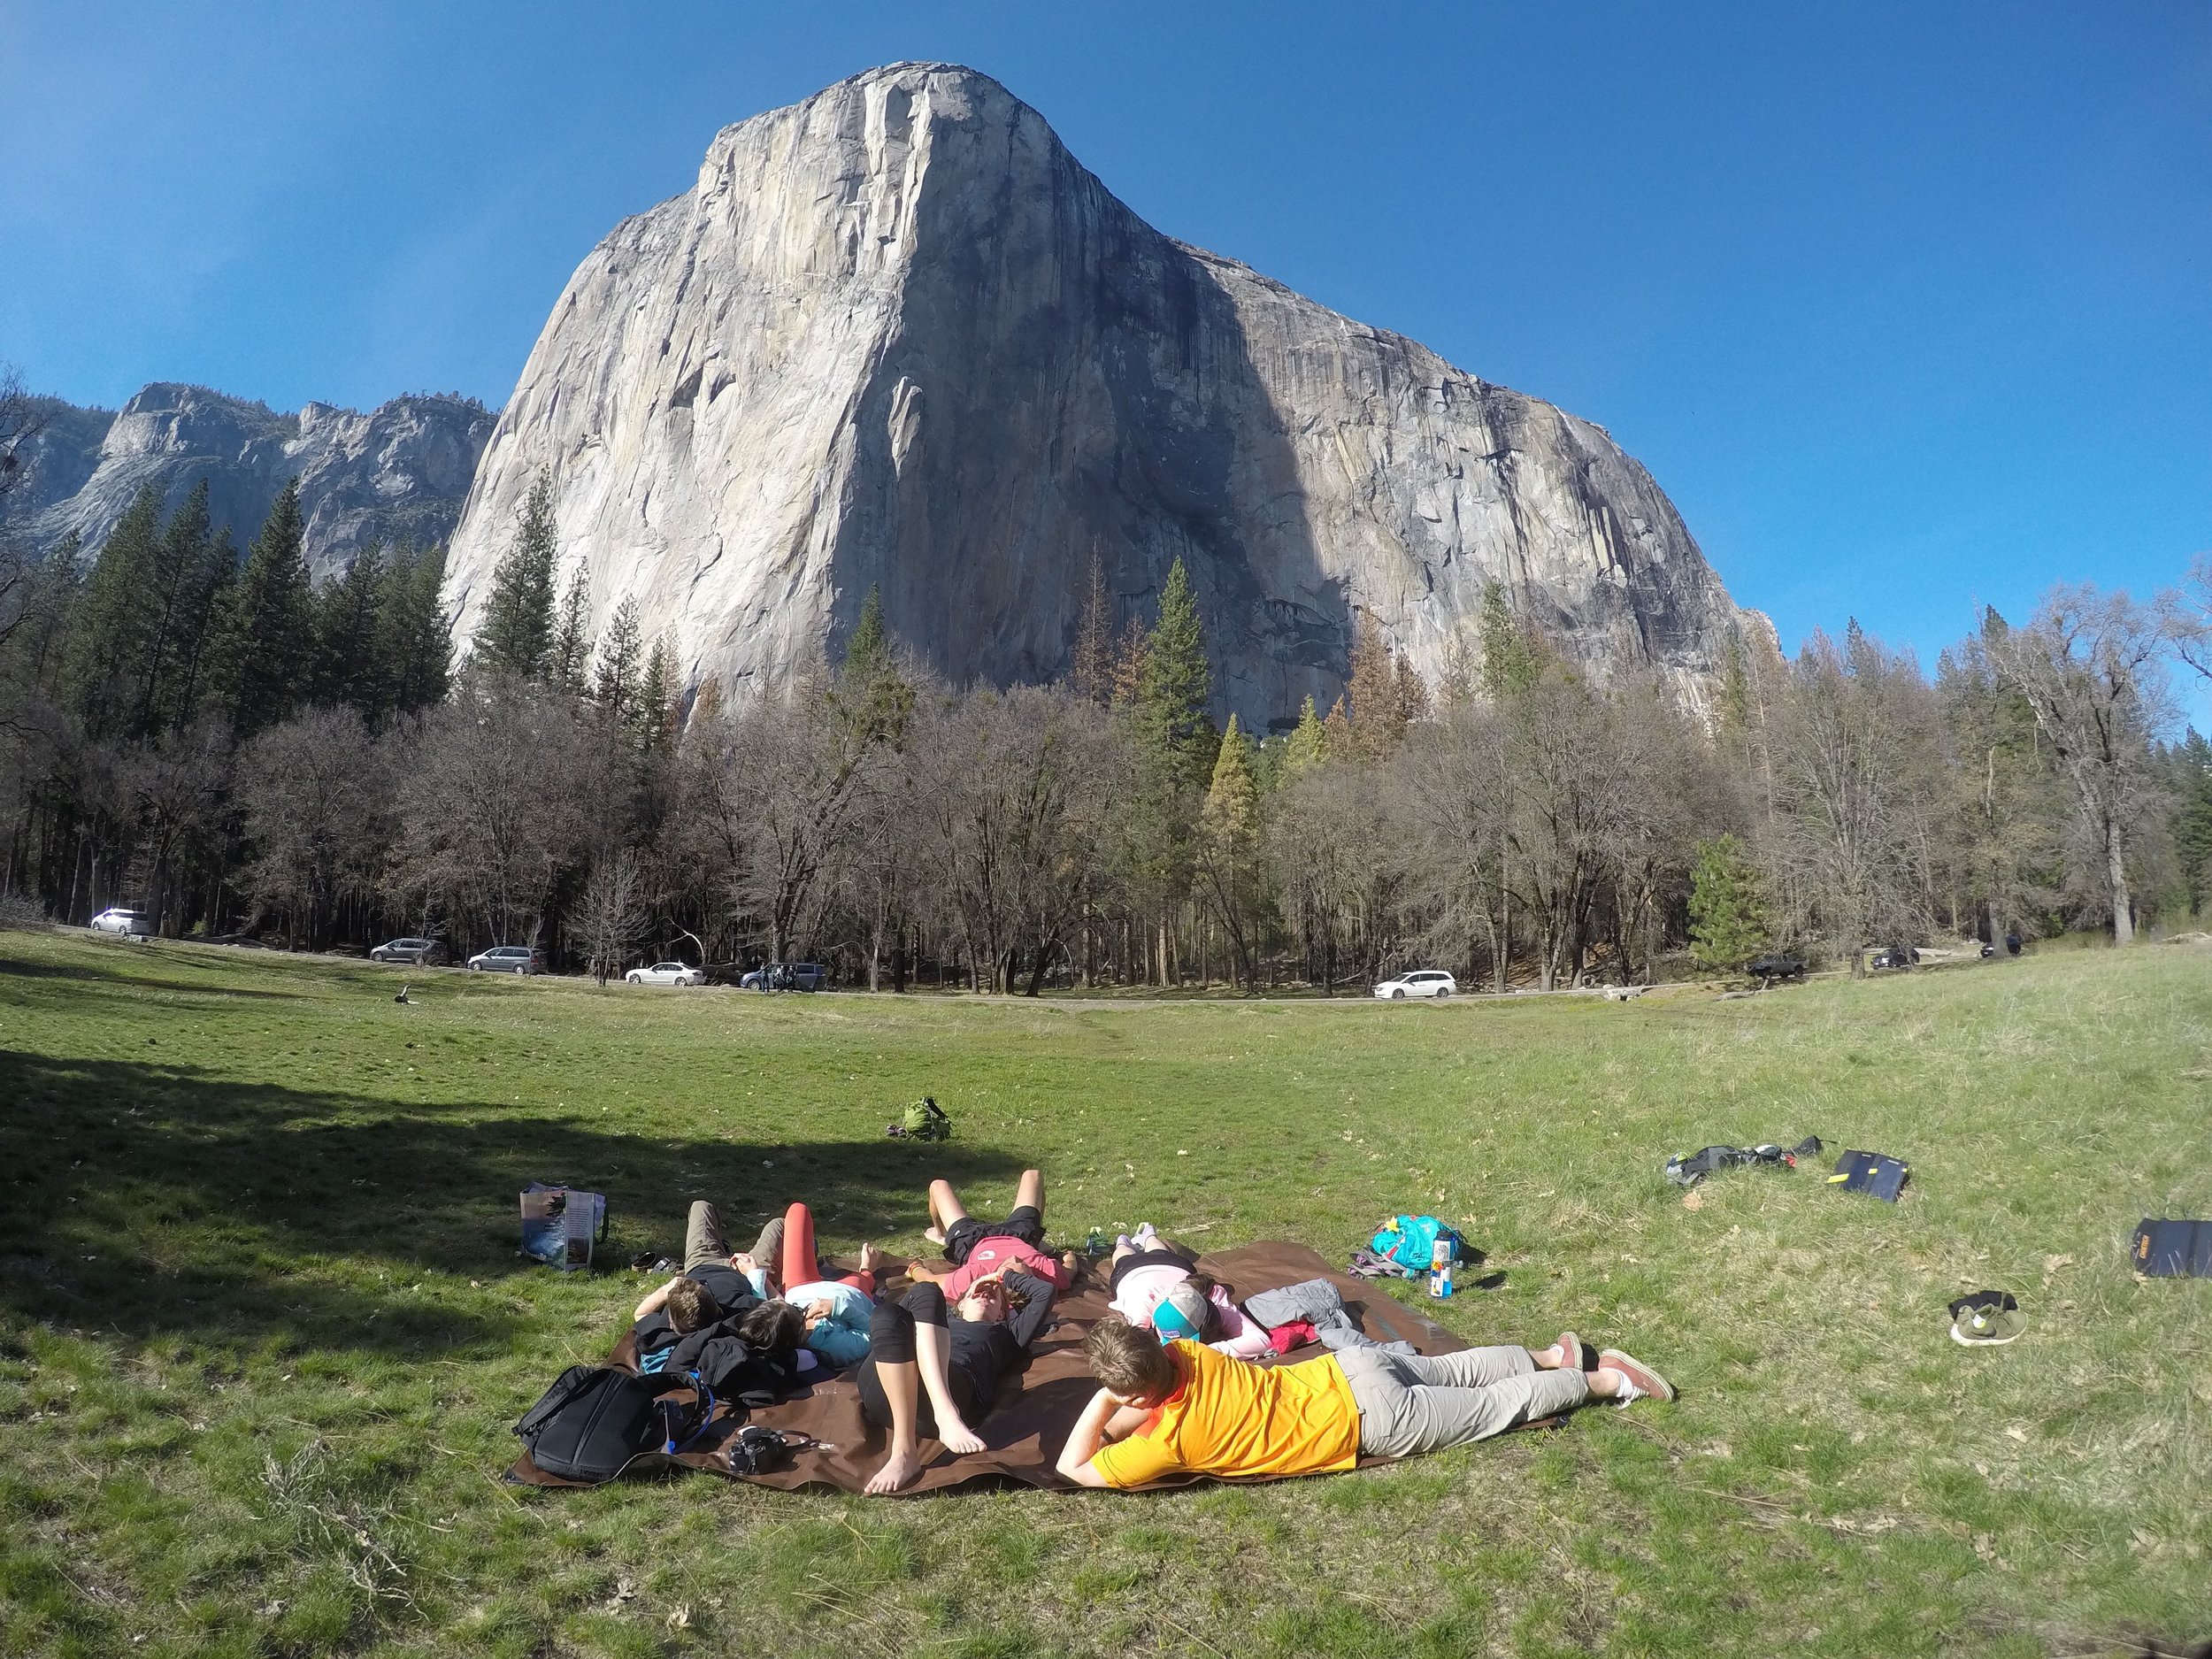 Hanging out in El Cap meadows